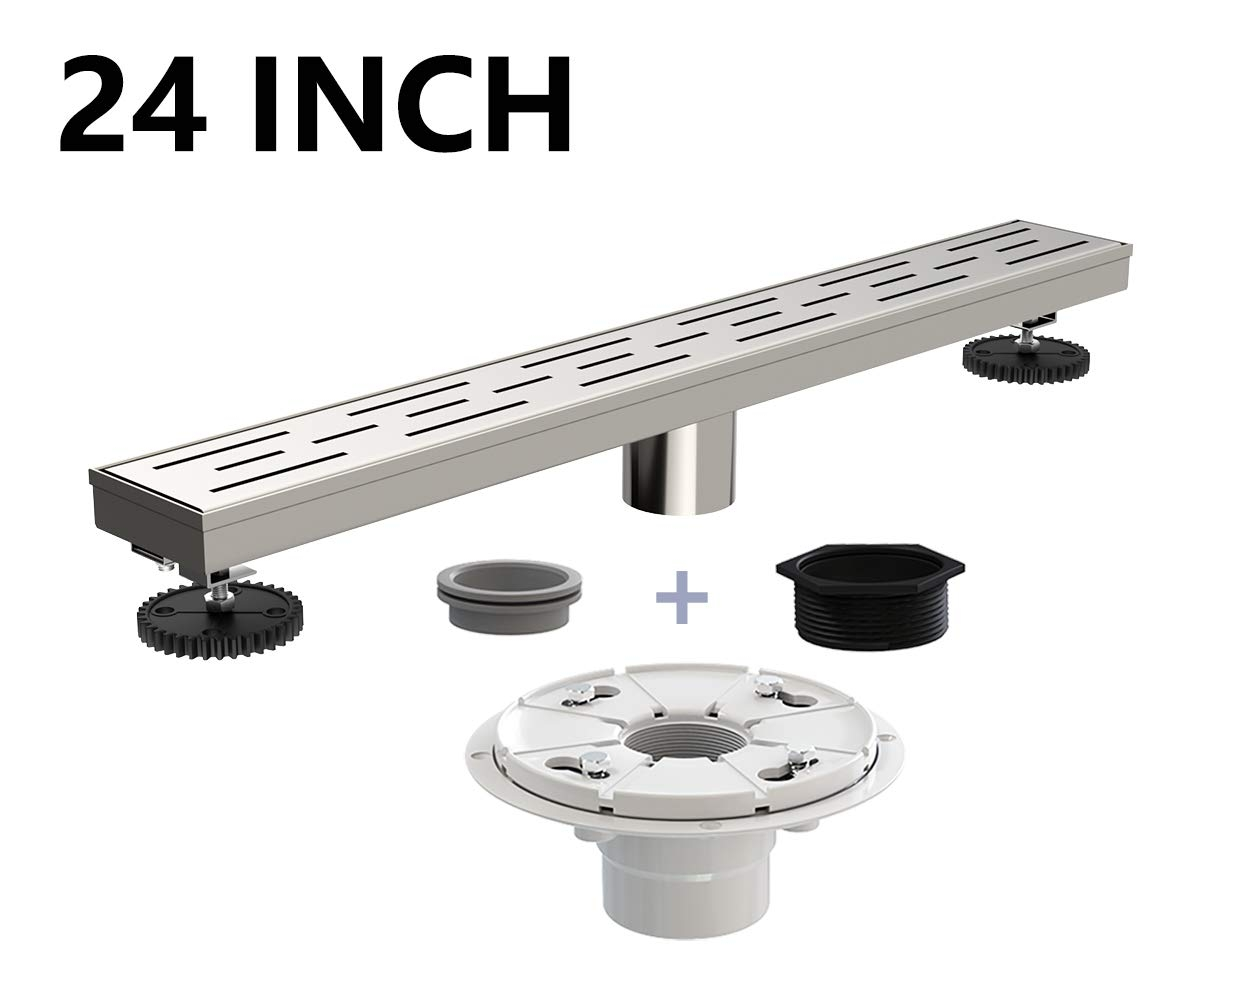 Juno 24 Inch Rectangular Linear Drain for Shower with Shower Drain Base Flange, Brick Grate Cover